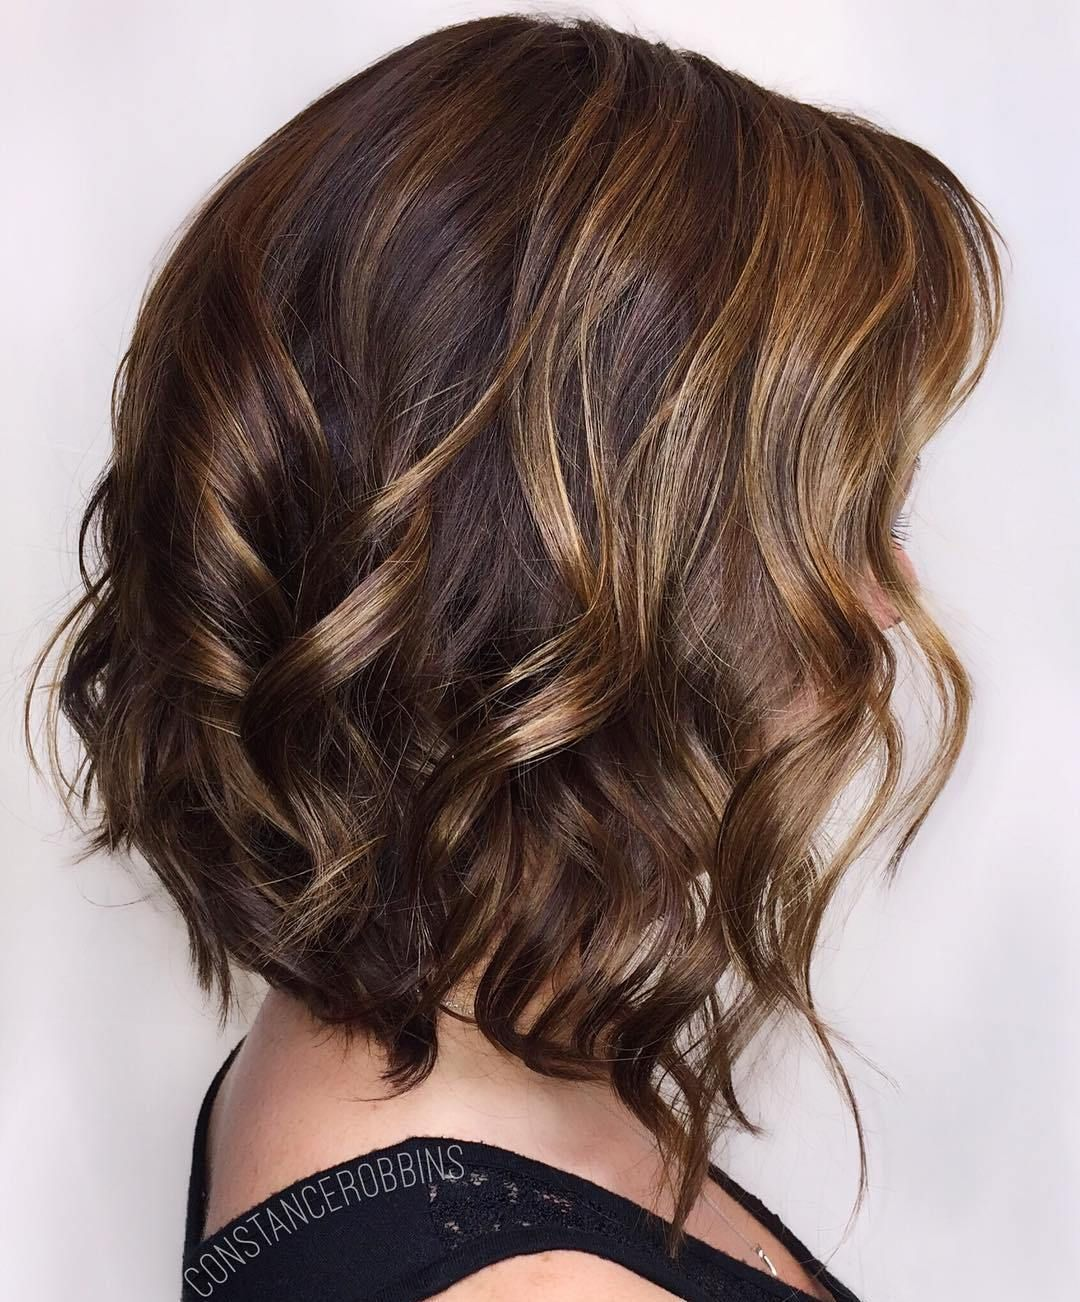 50 Ideas For Light Brown Hair With Highlights And Lowlights Brown Hair With Highlights Hair Styles Light Brown Hair